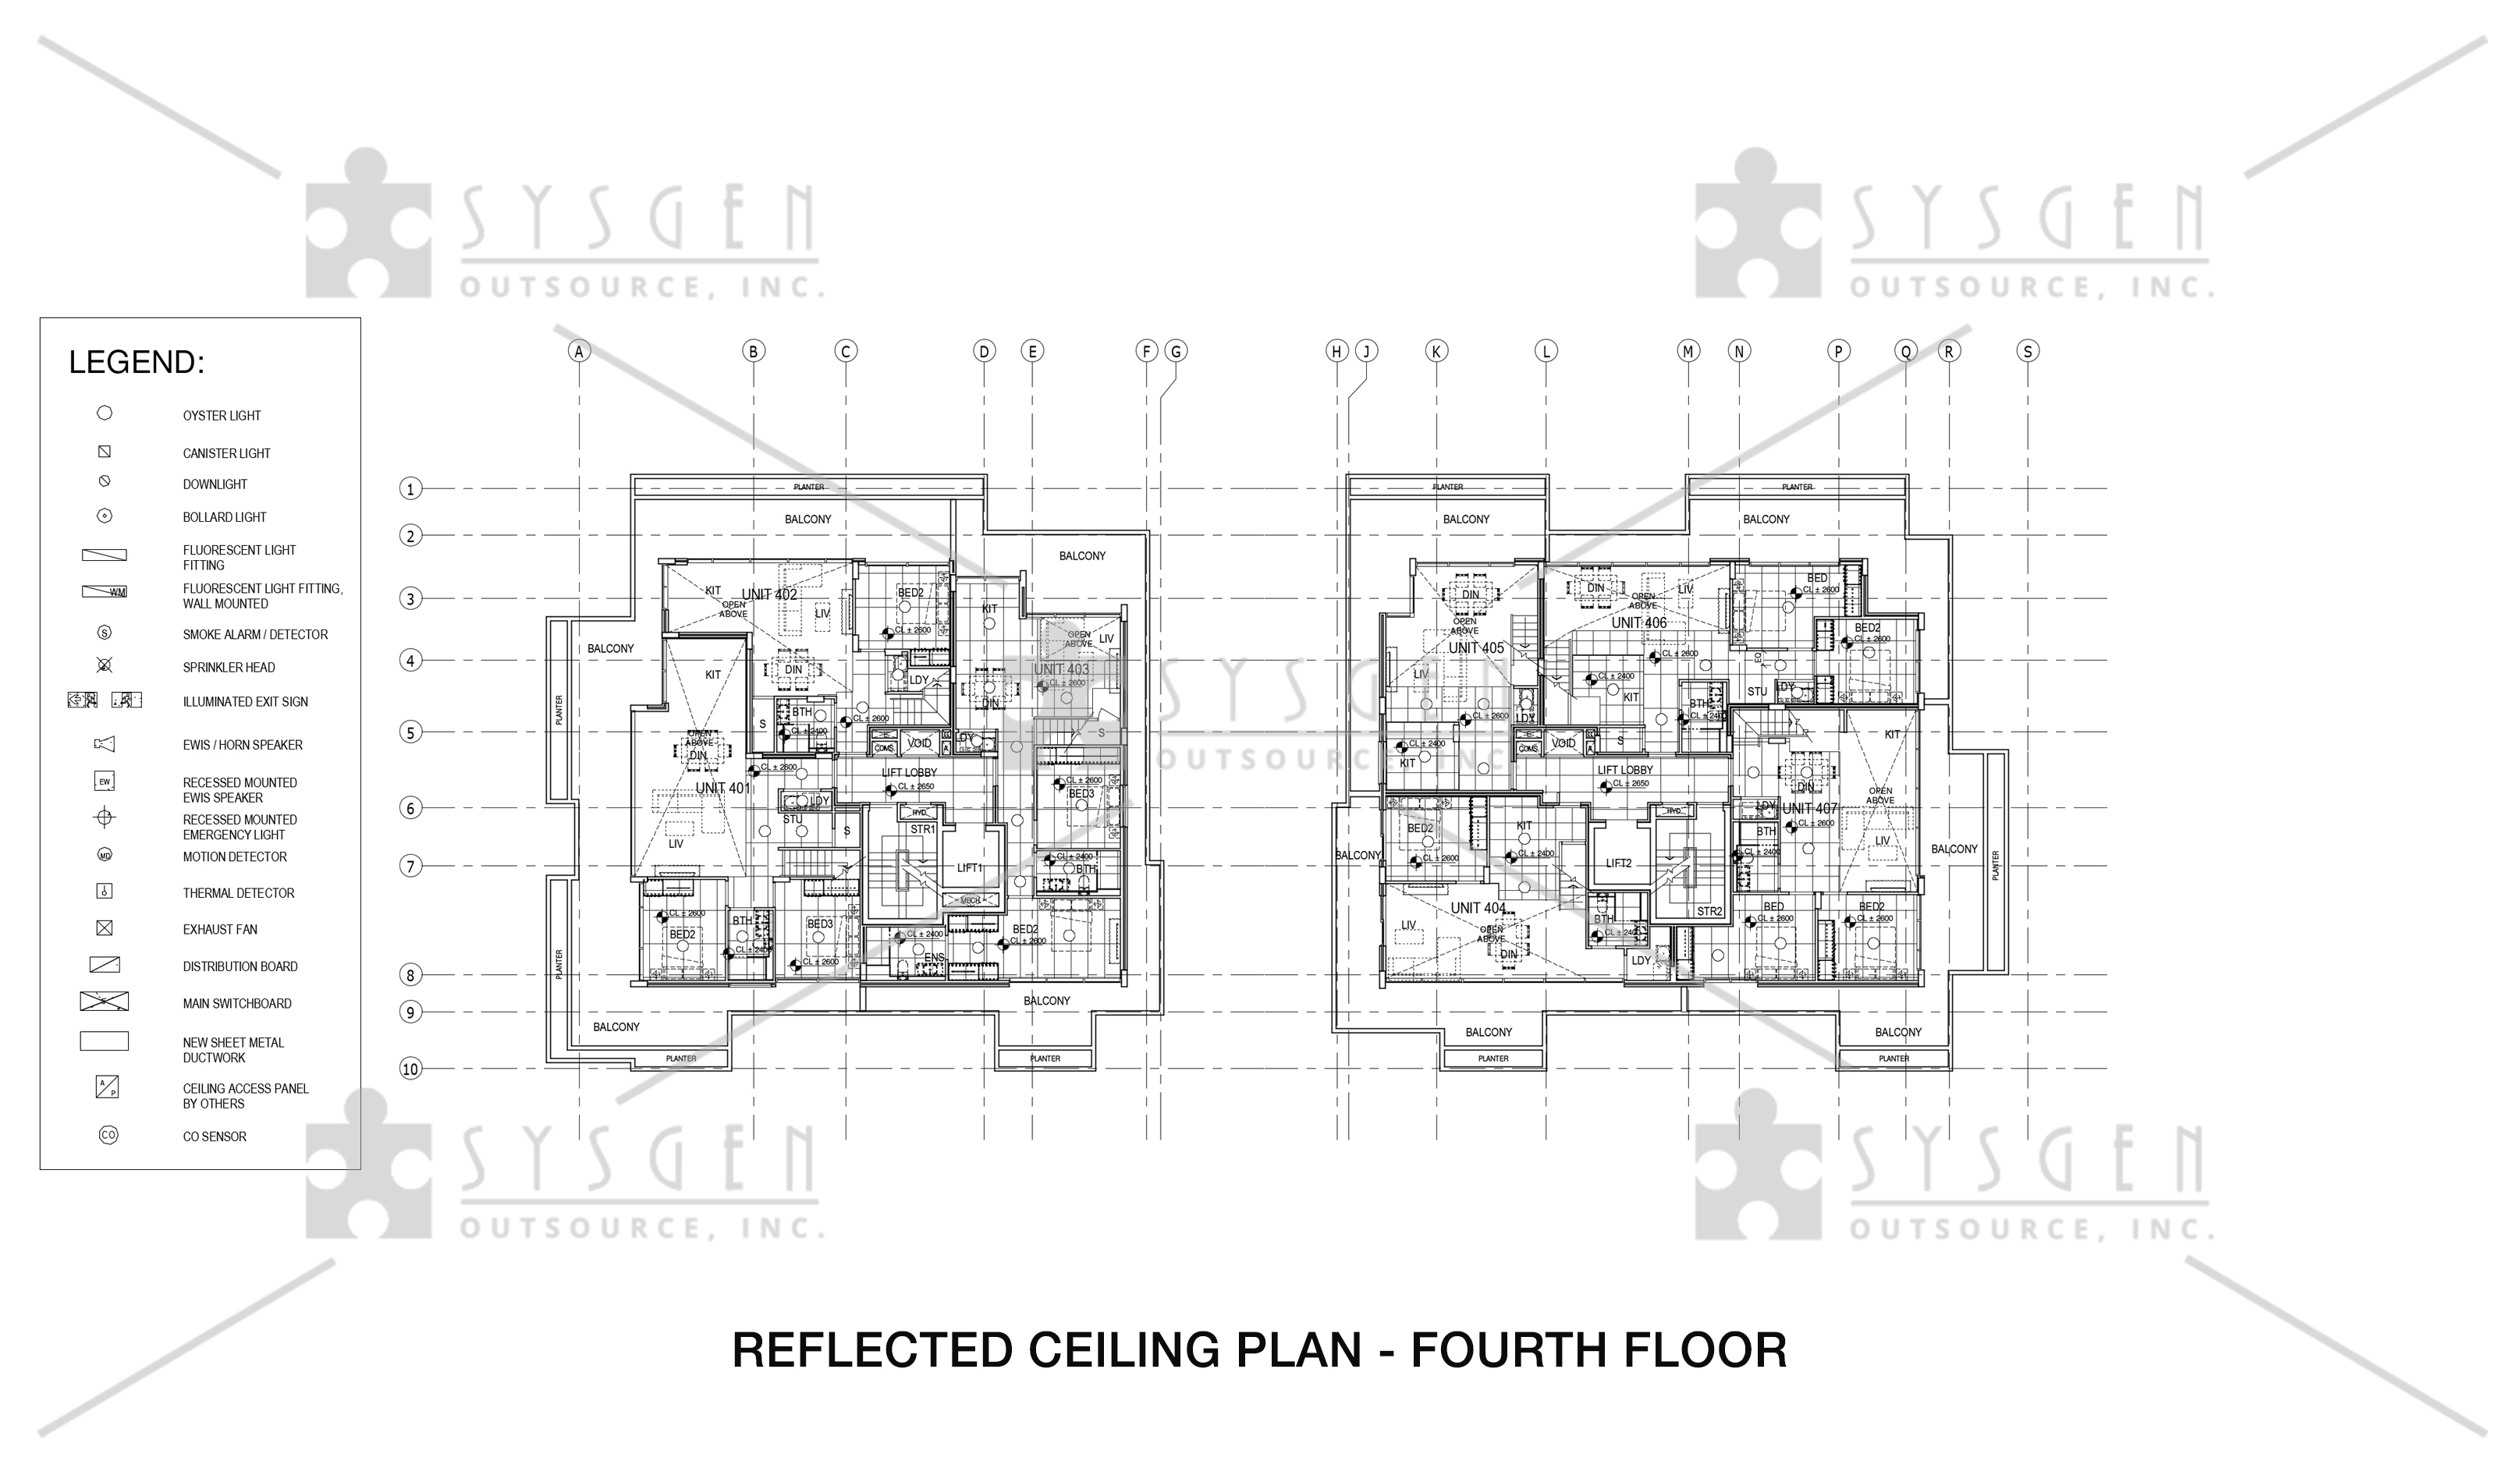 sysgen-outsource-cad-outsourcing-services-cad-conversion-revit-4-storey-residentialss30